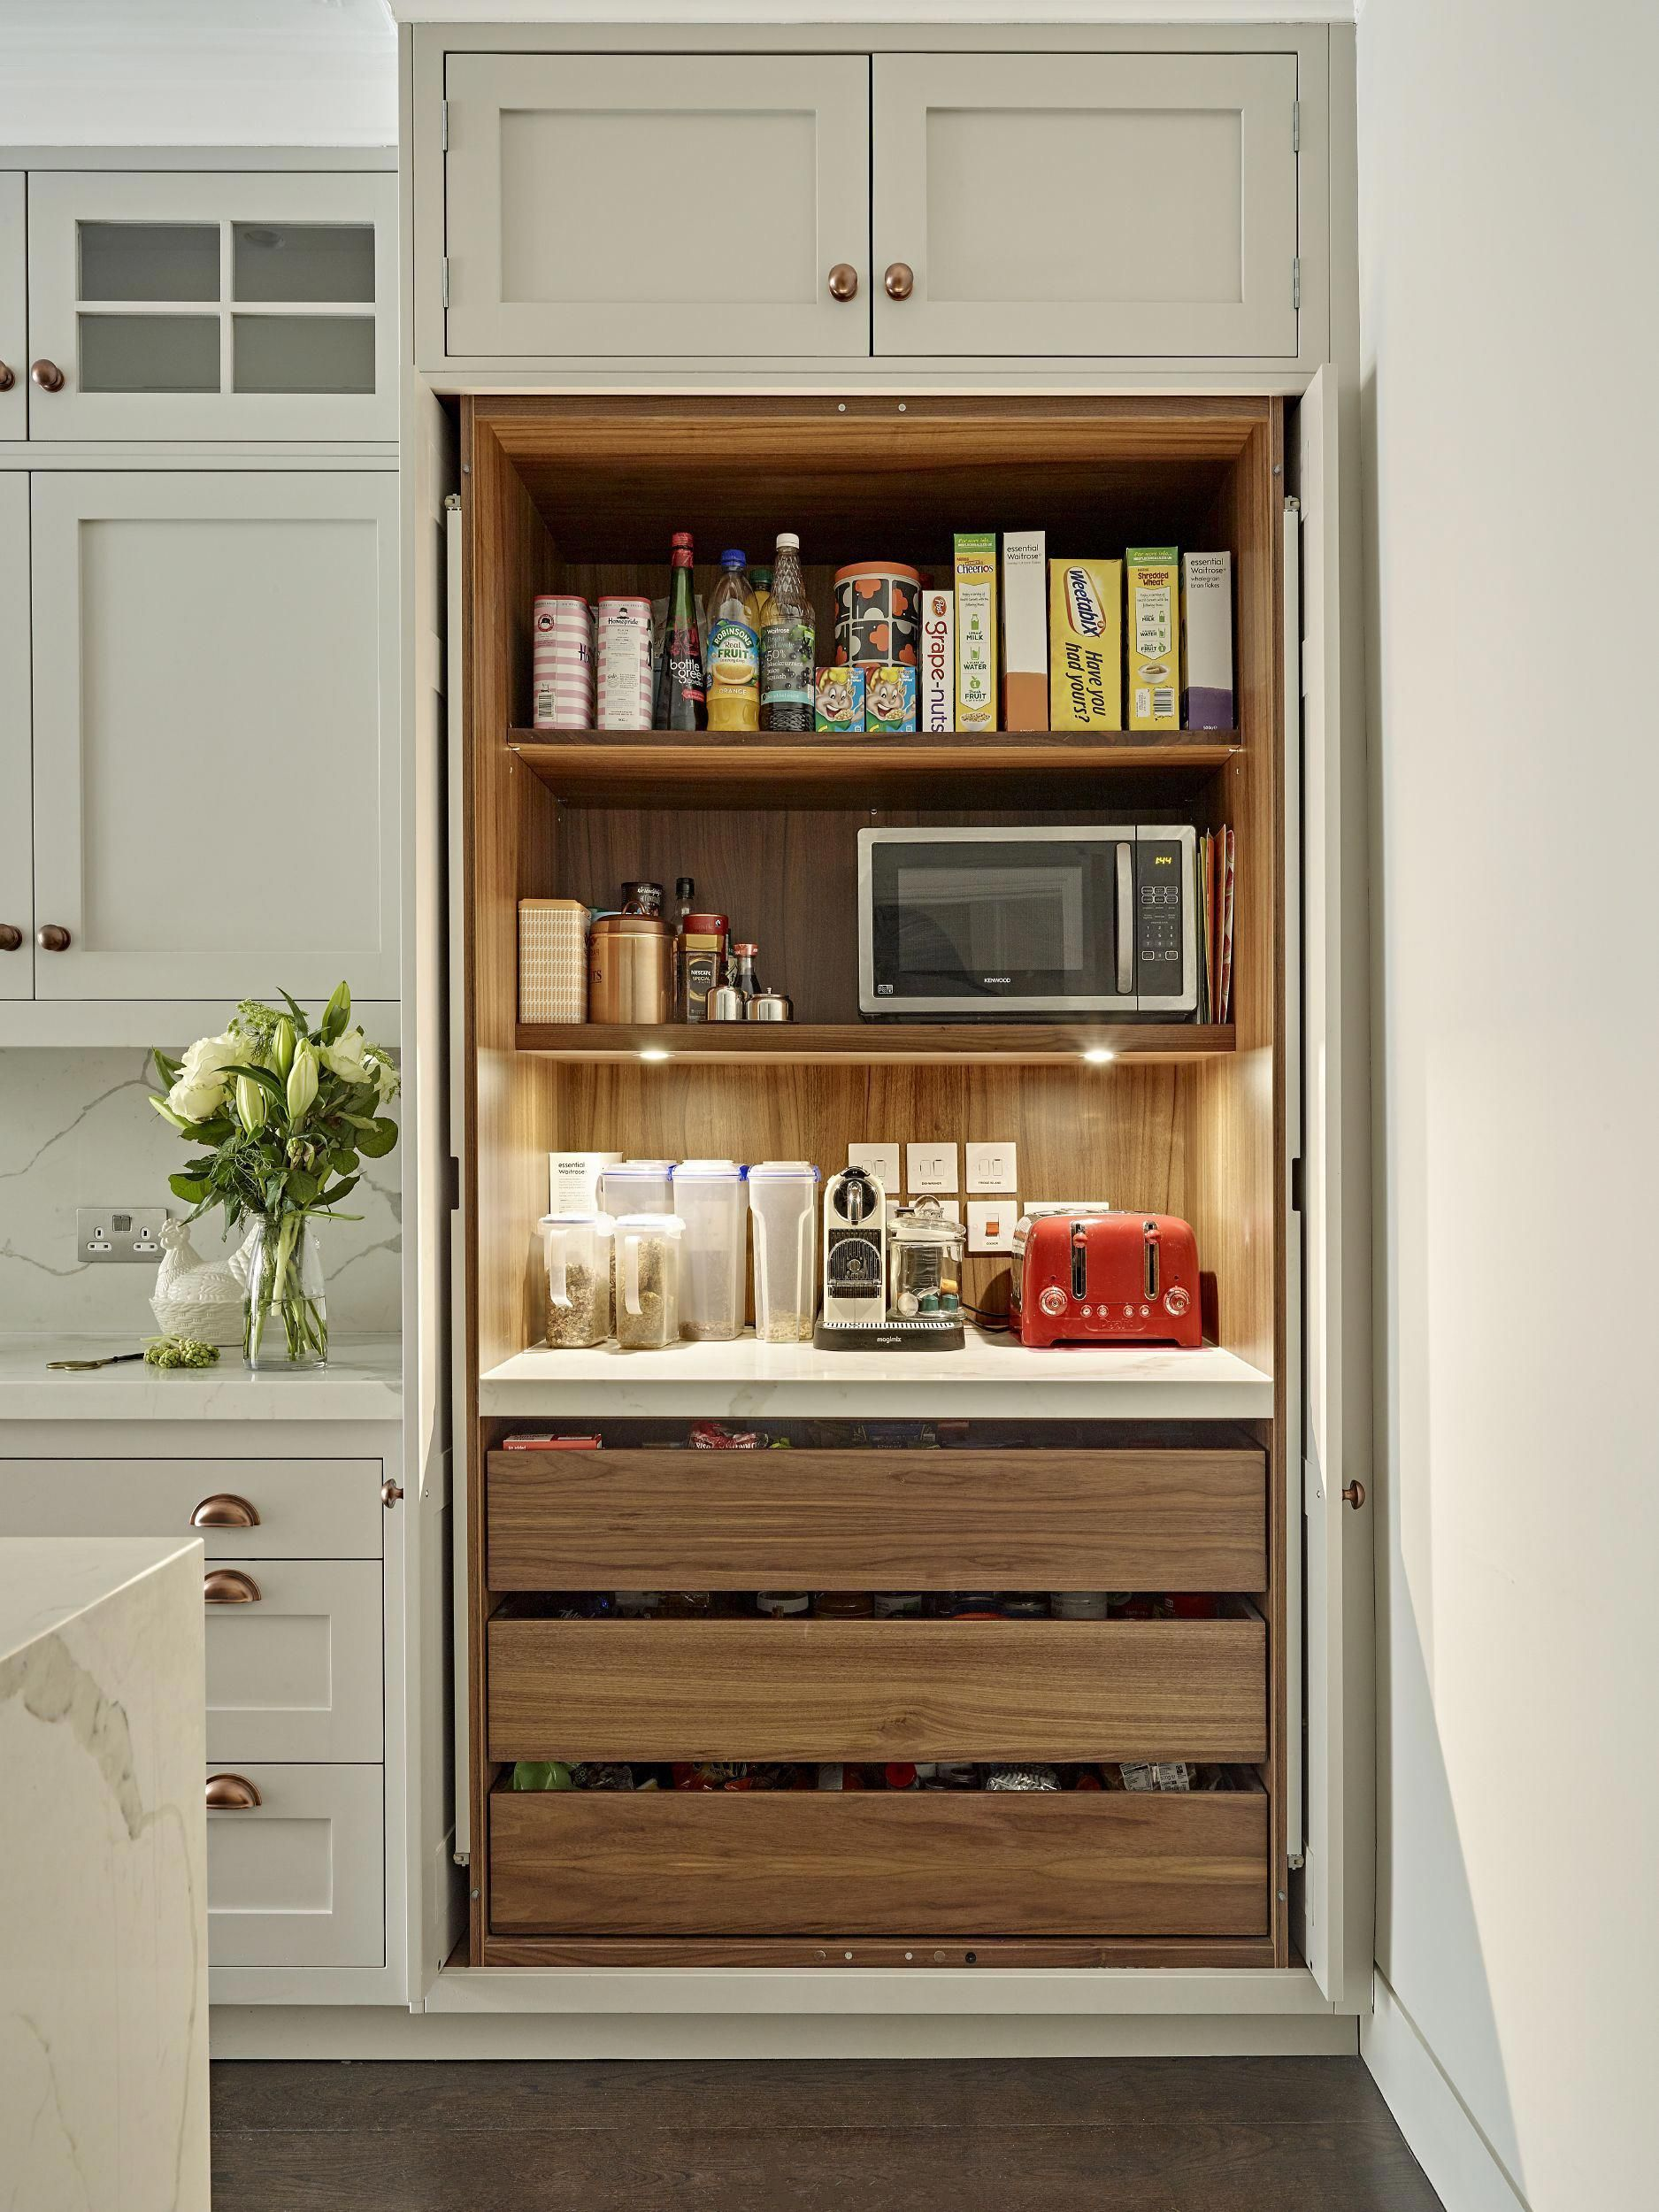 Breakfast Pantry Cabinet With Shelf Lighting Power Supply For Small Appliances And Worktop Little Kitchen Design Plans Kitchen Remodel Small Kitchen Design